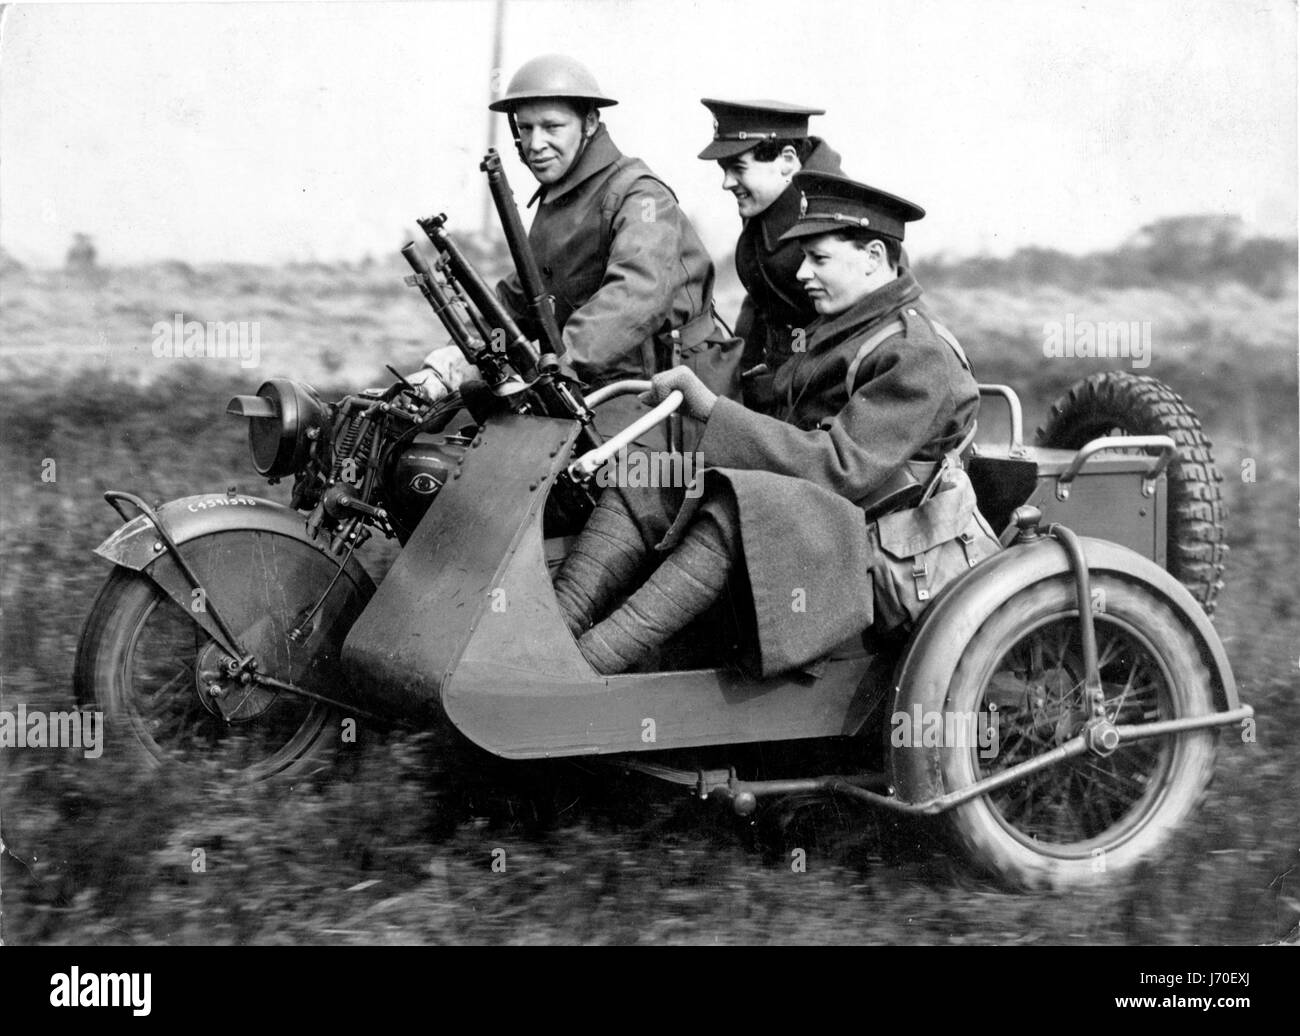 1940 Norton G33 Bren Gun sidecar military motorcycle - Stock Image